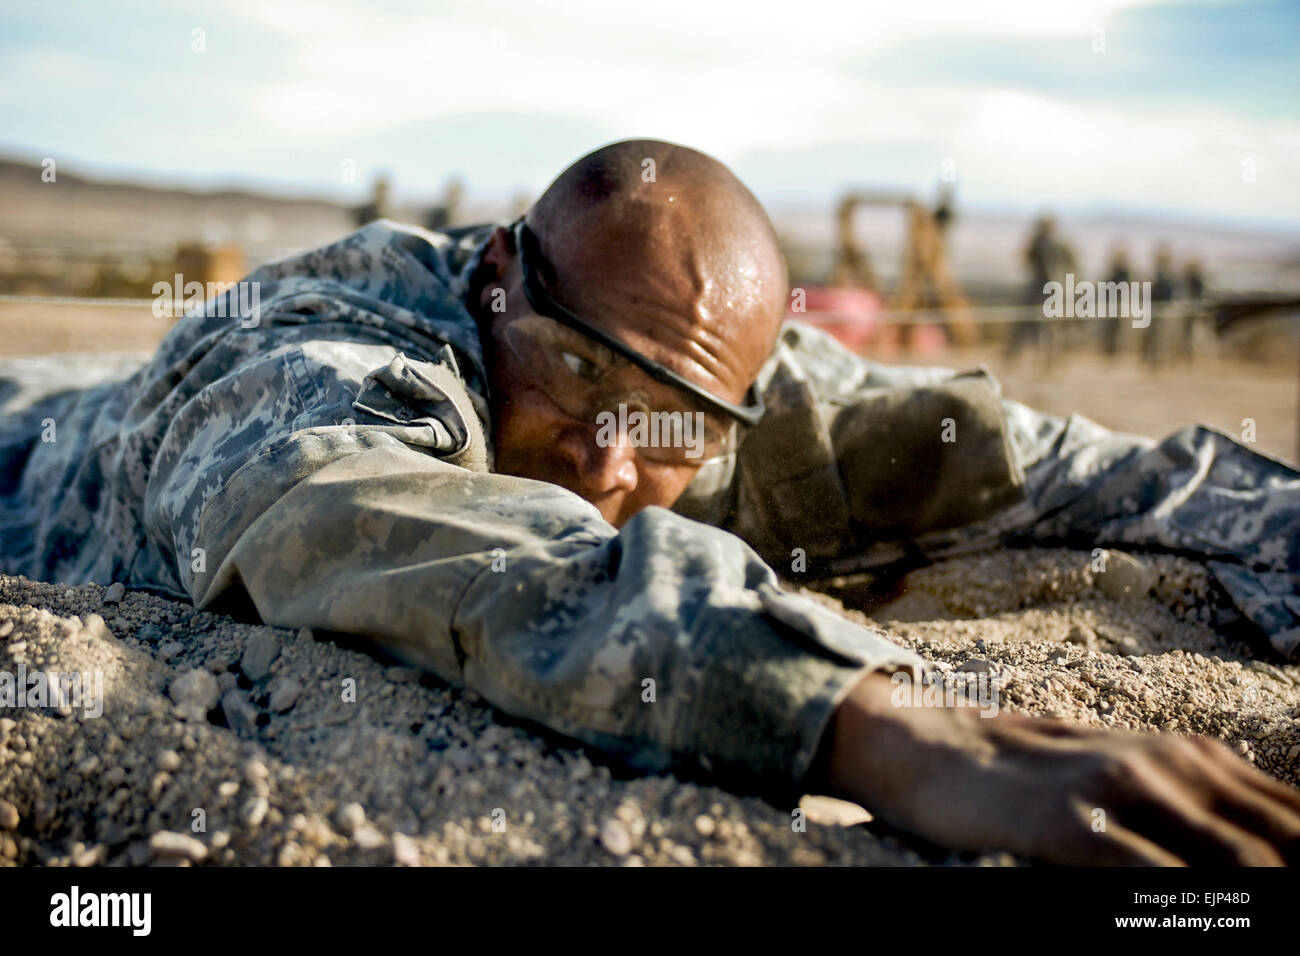 U.S. Army Sgt. 1st Class Christopher Black, a candidate for the U.S. Army Rangers, pulls himself out from under - Stock Image